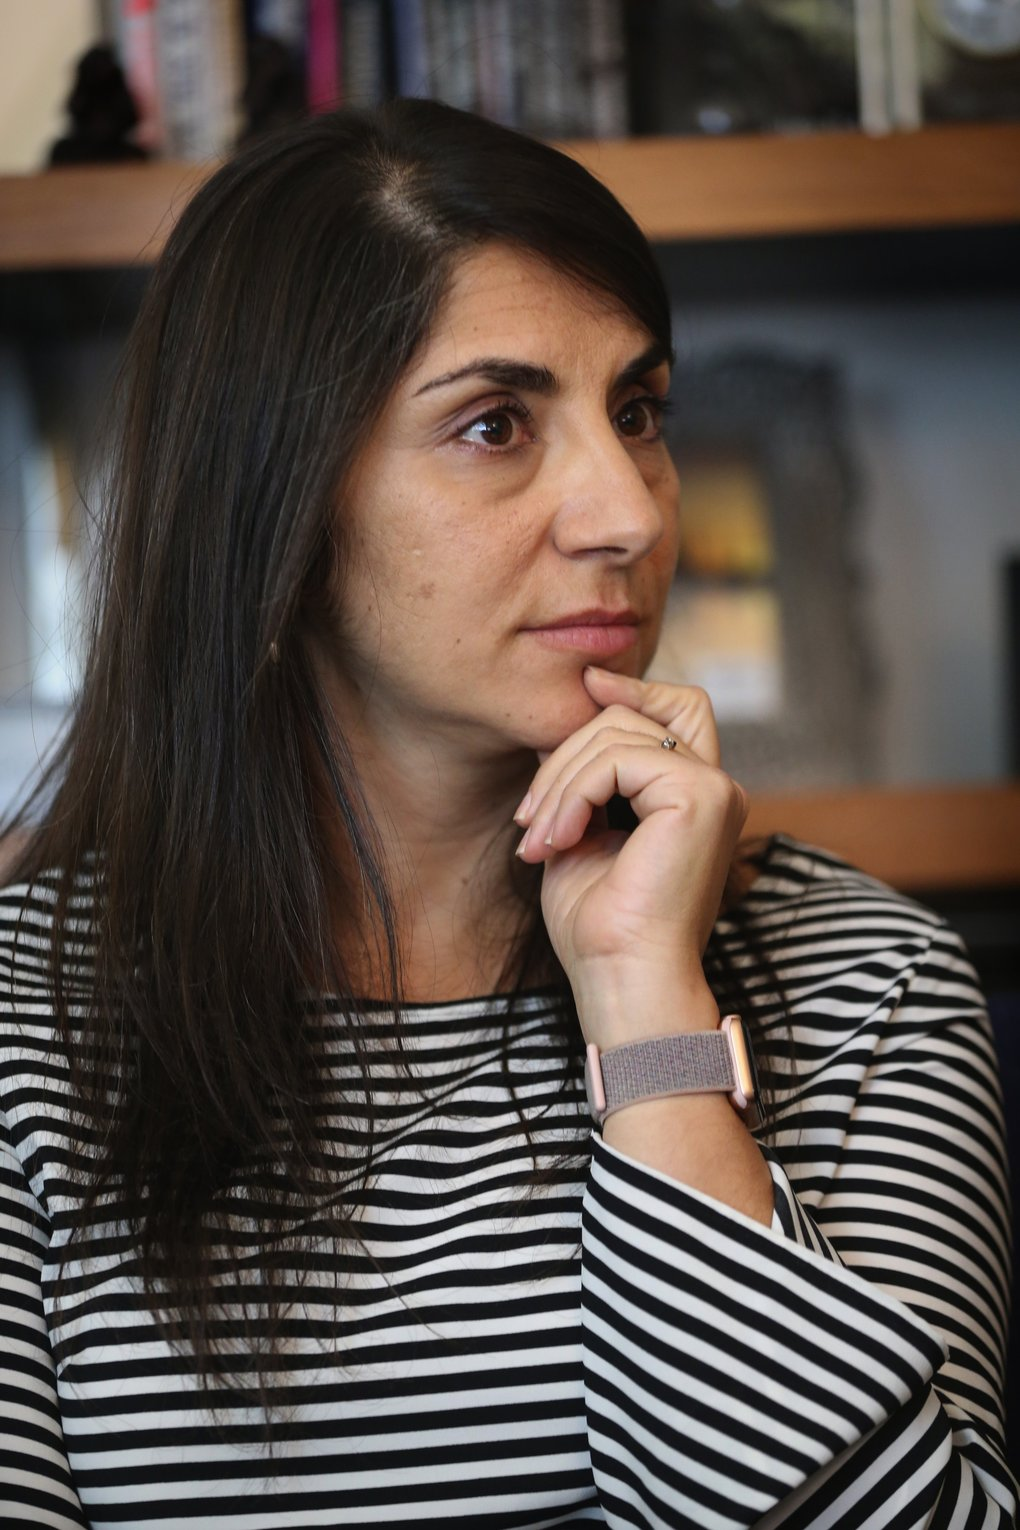 Hala Annabi, an associate professor in the University of Washington Information School, researches job opportunities for people with autism. (Ellen M. Banner/The Seattle Times)